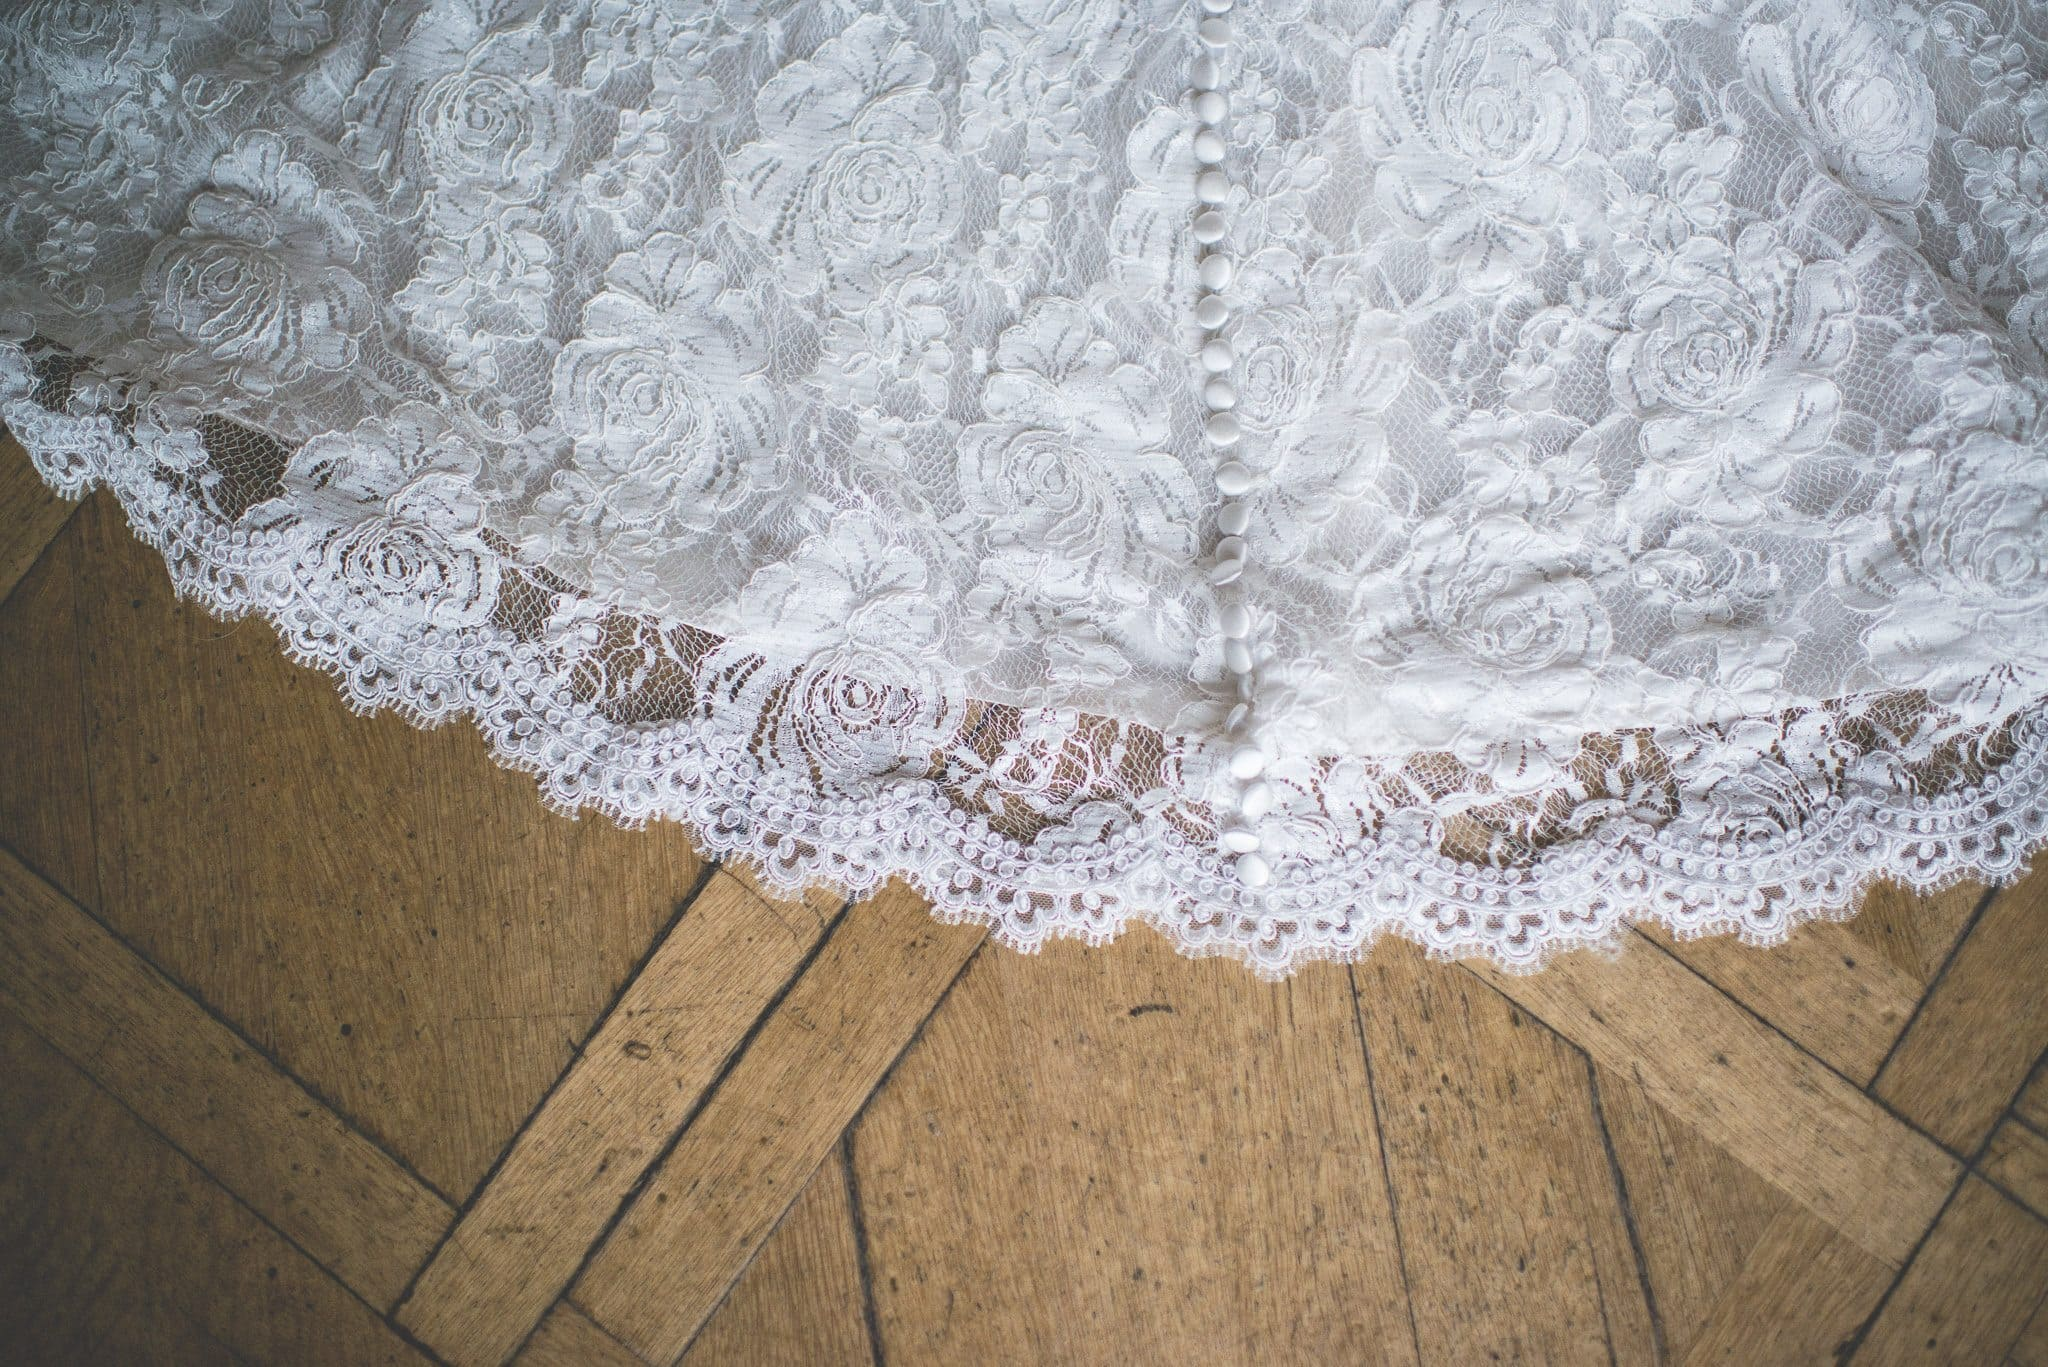 A close up shot of the lace detailing at the bottom of the wedding dress